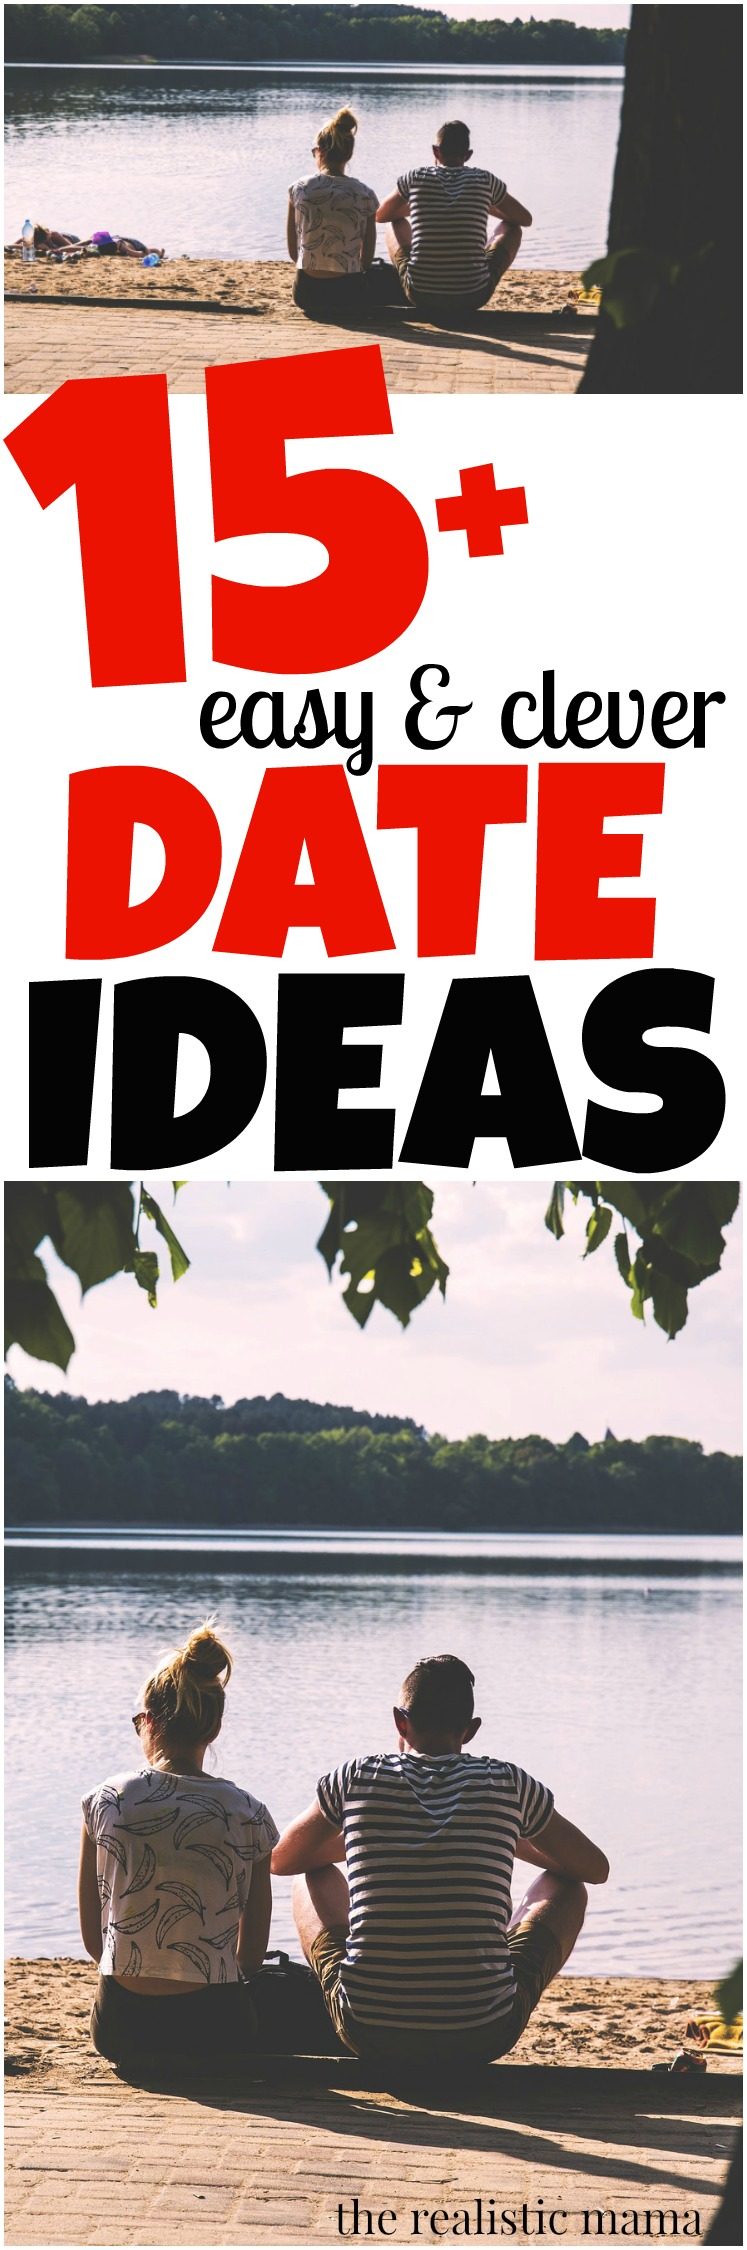 FUN DATE IDEAS! 15+ Easy & Clever Dates